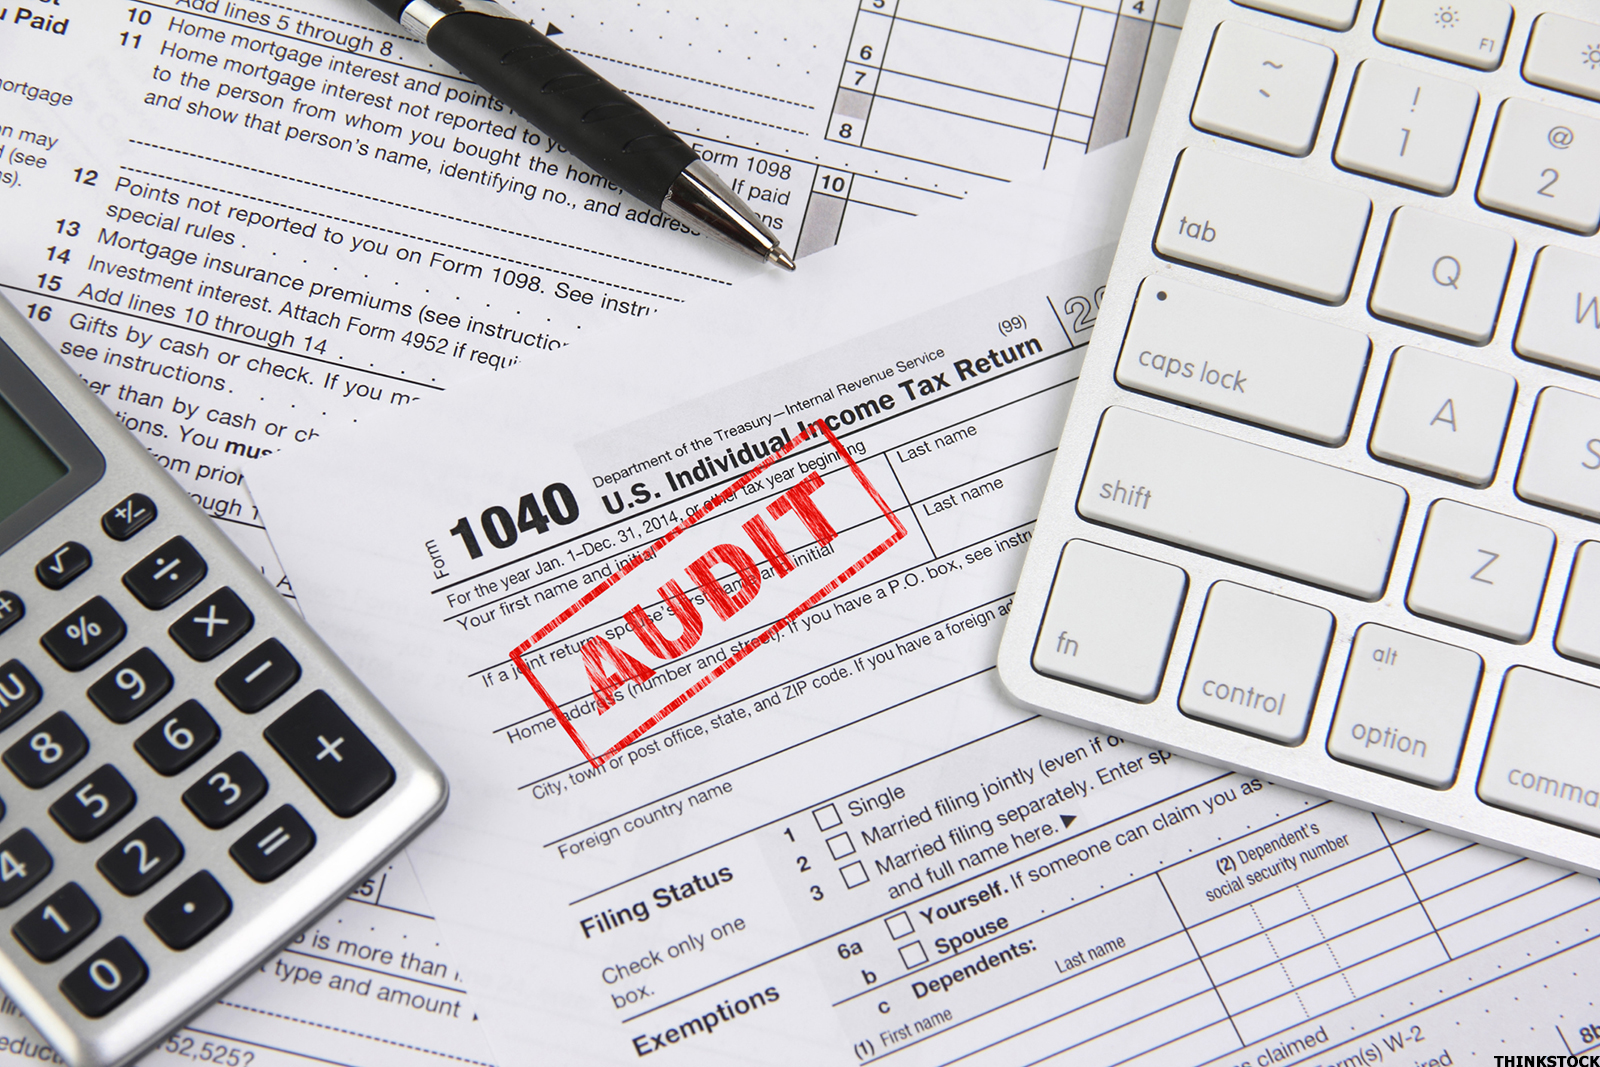 Top 15 Red Flags Triggering an IRS Tax Audit - TheStreet